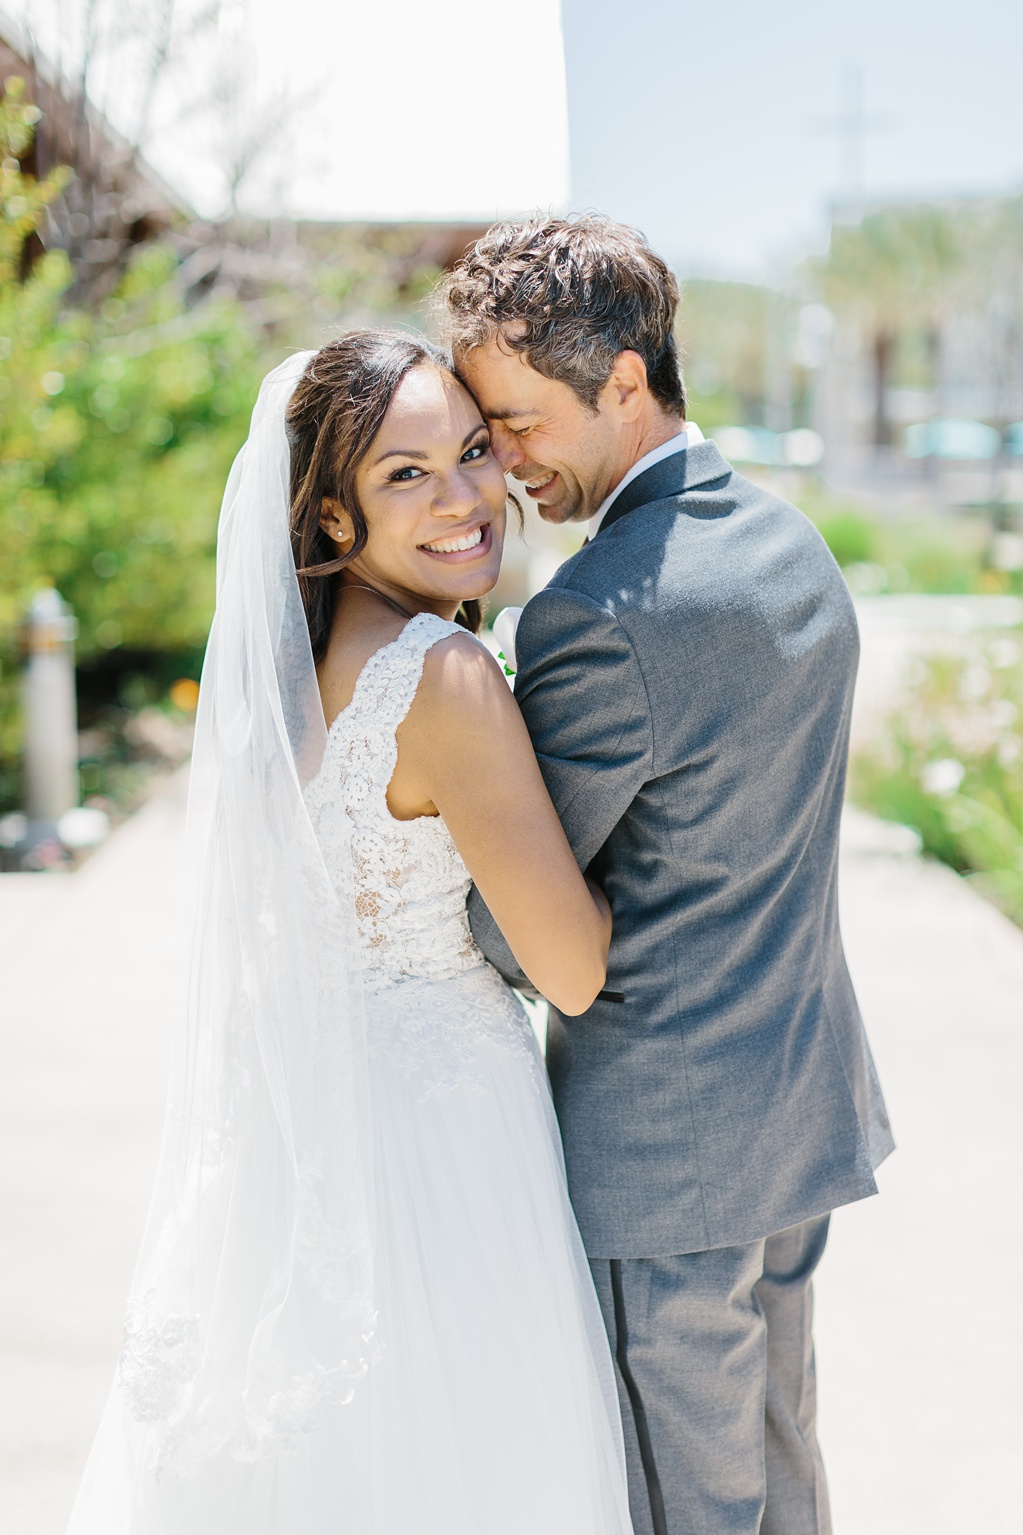 Natural Light Church Wedding In Irvine California By Madison Ellis Photography (99)